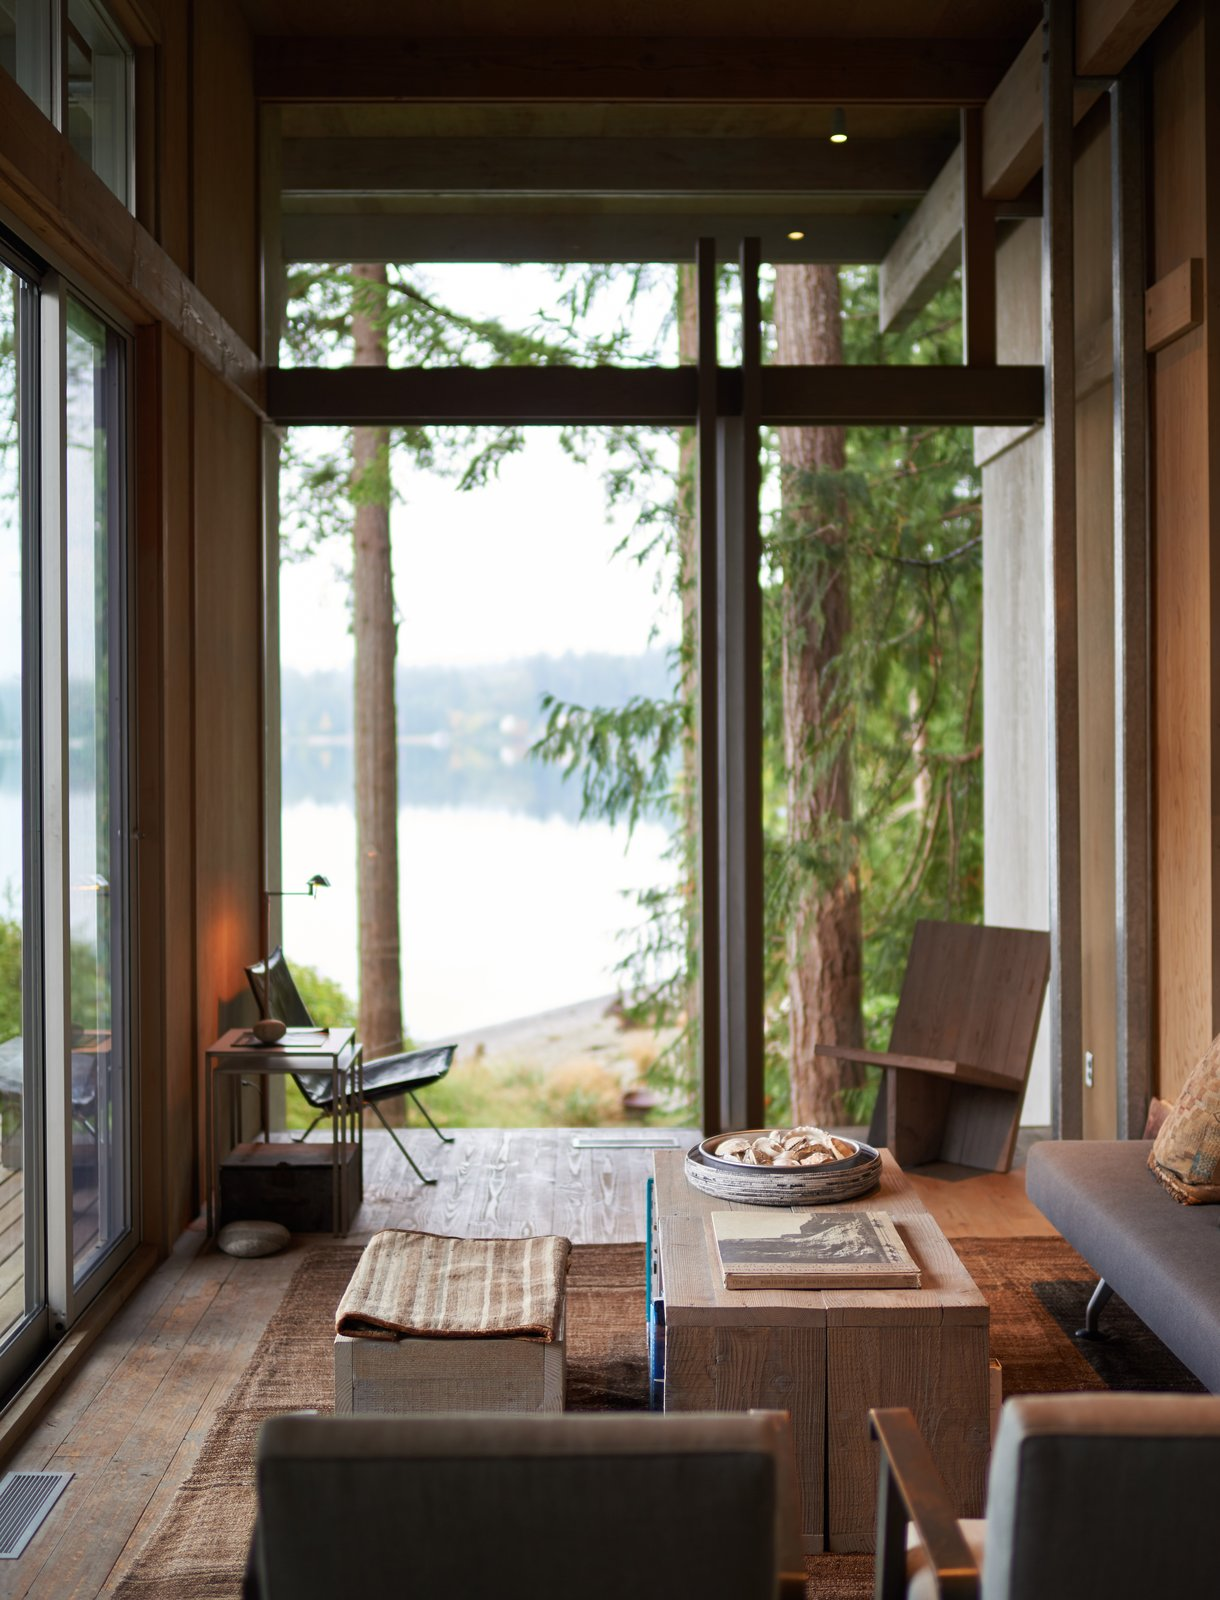 the-living-rooms-large-wall-of-glass-frames-a-view-of-the-adjoining-grassy-field-and-puget-sound-visually-blending-indoors-and-outdoors.jpg